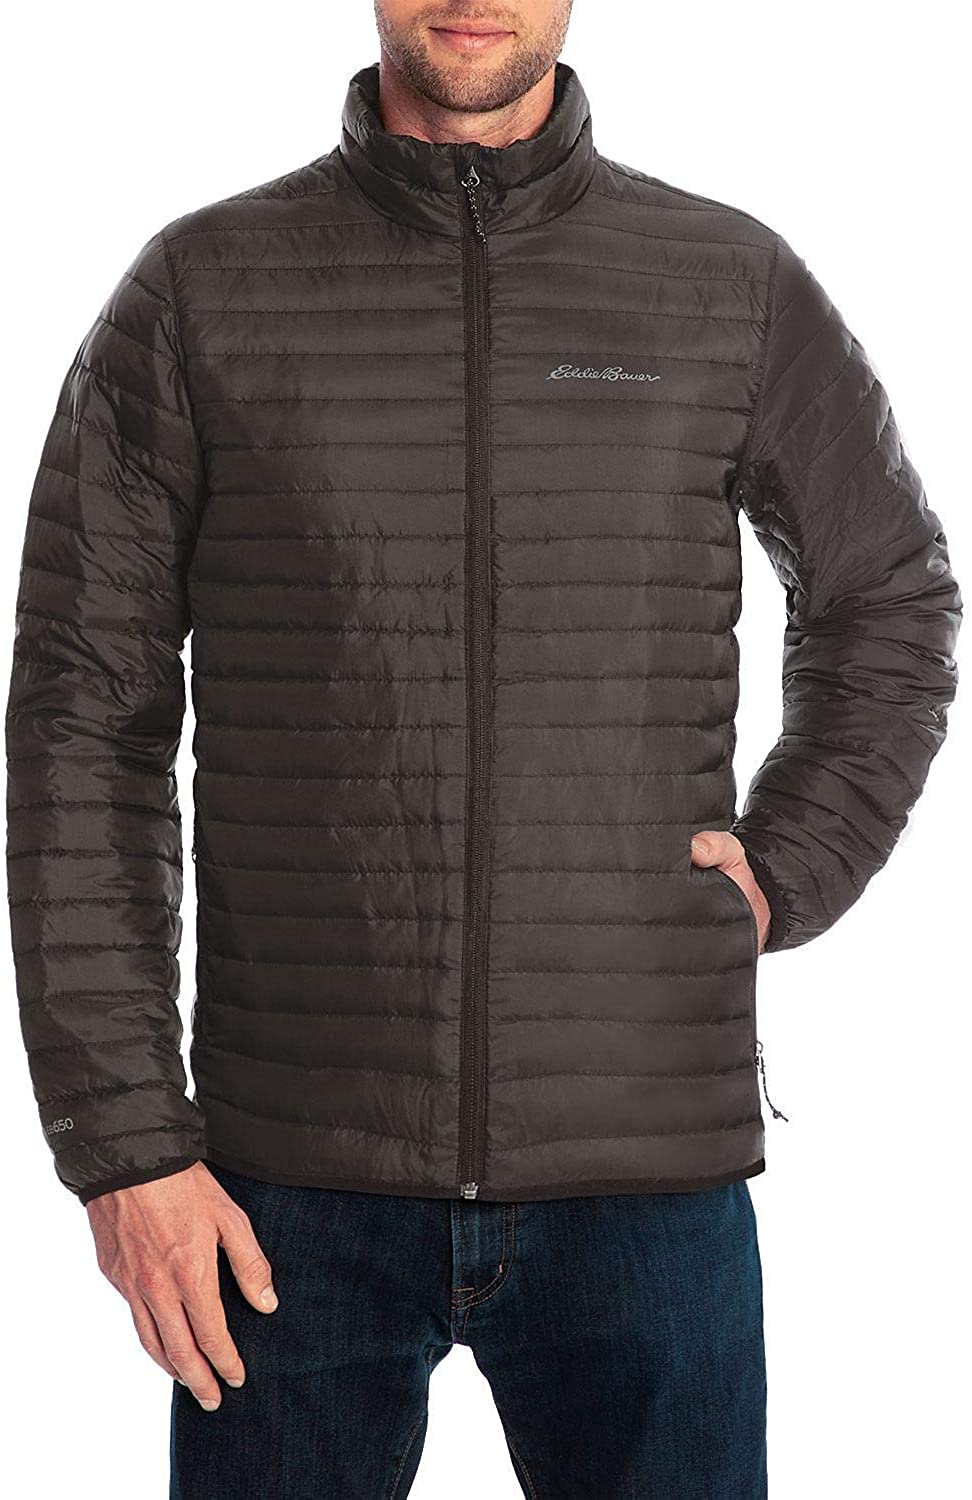 Eddie Bauer Mens Packable Rain Jacket